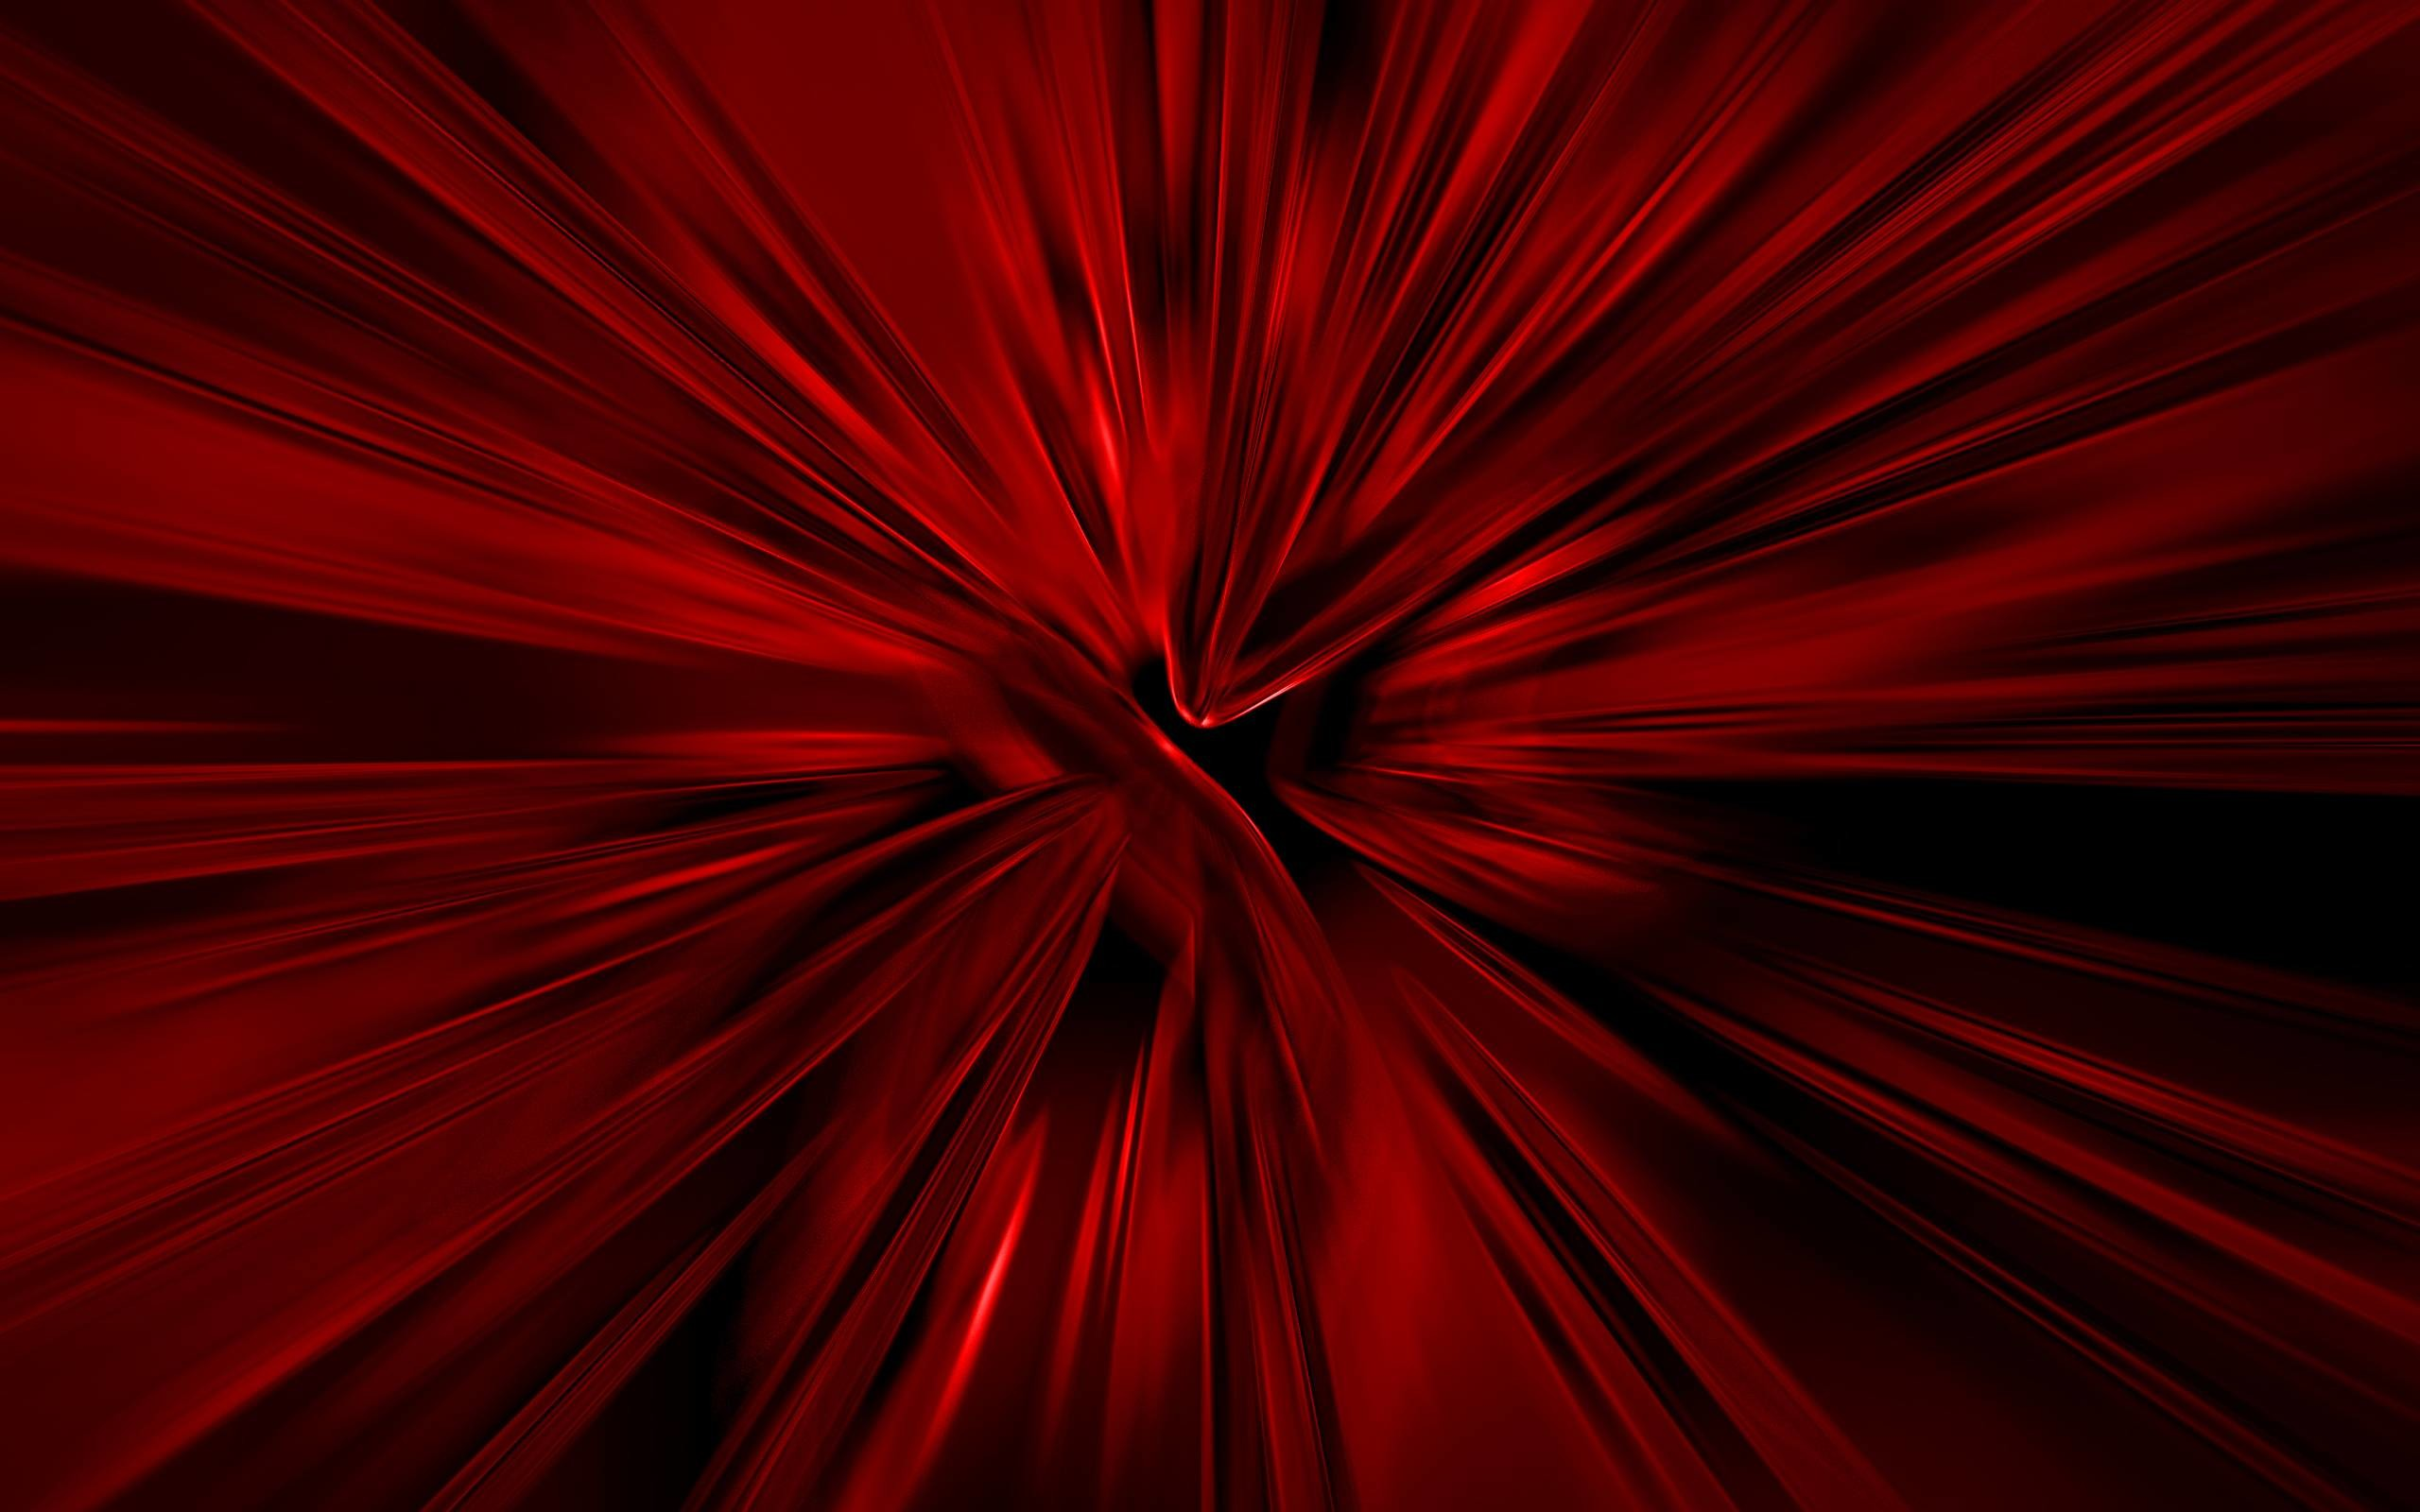 Red And Black Wallpaper 11 227544 High Definition Wallpapers .